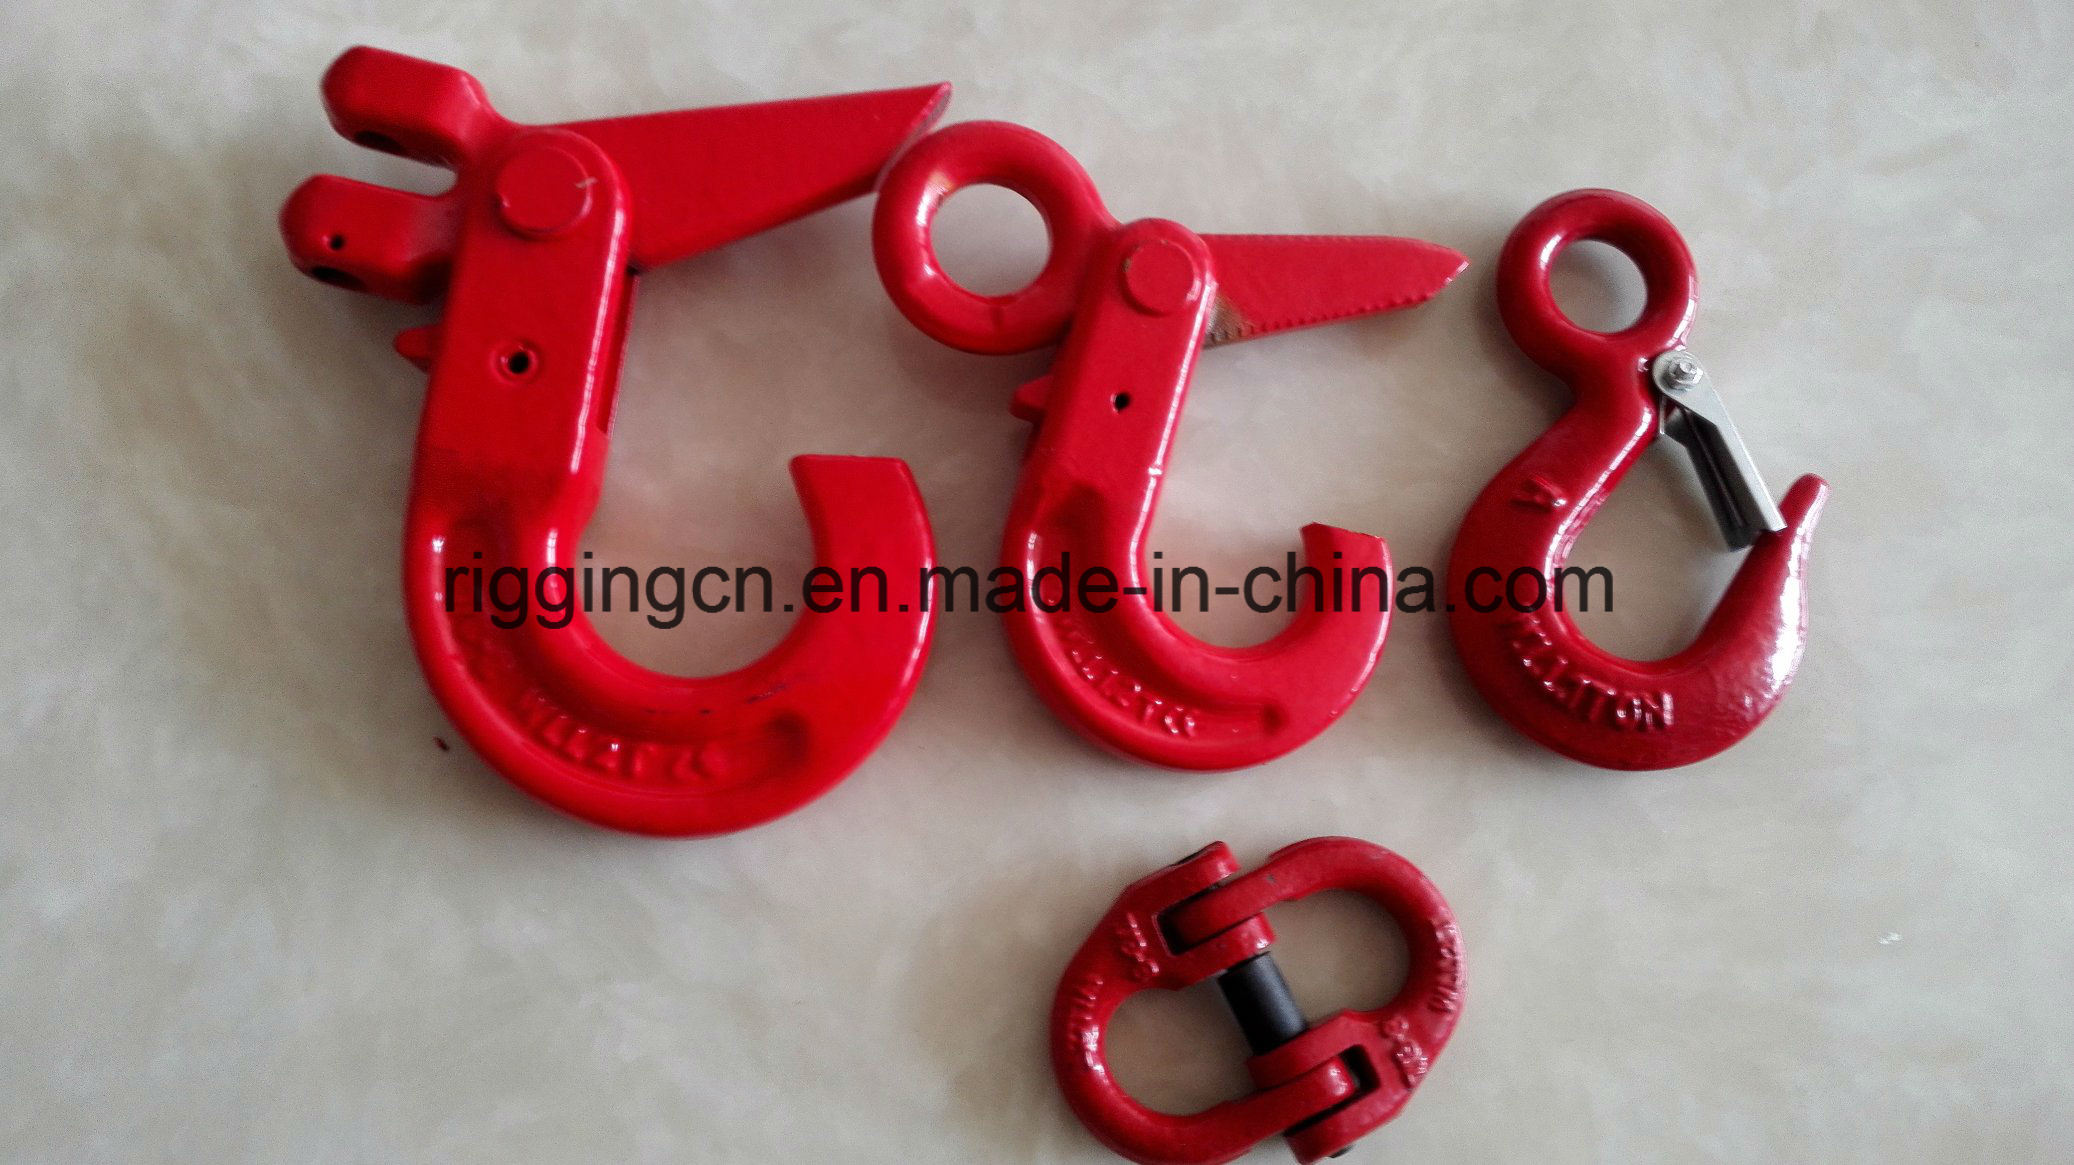 G80 safety Self Lock Eye Hook in European Standerd